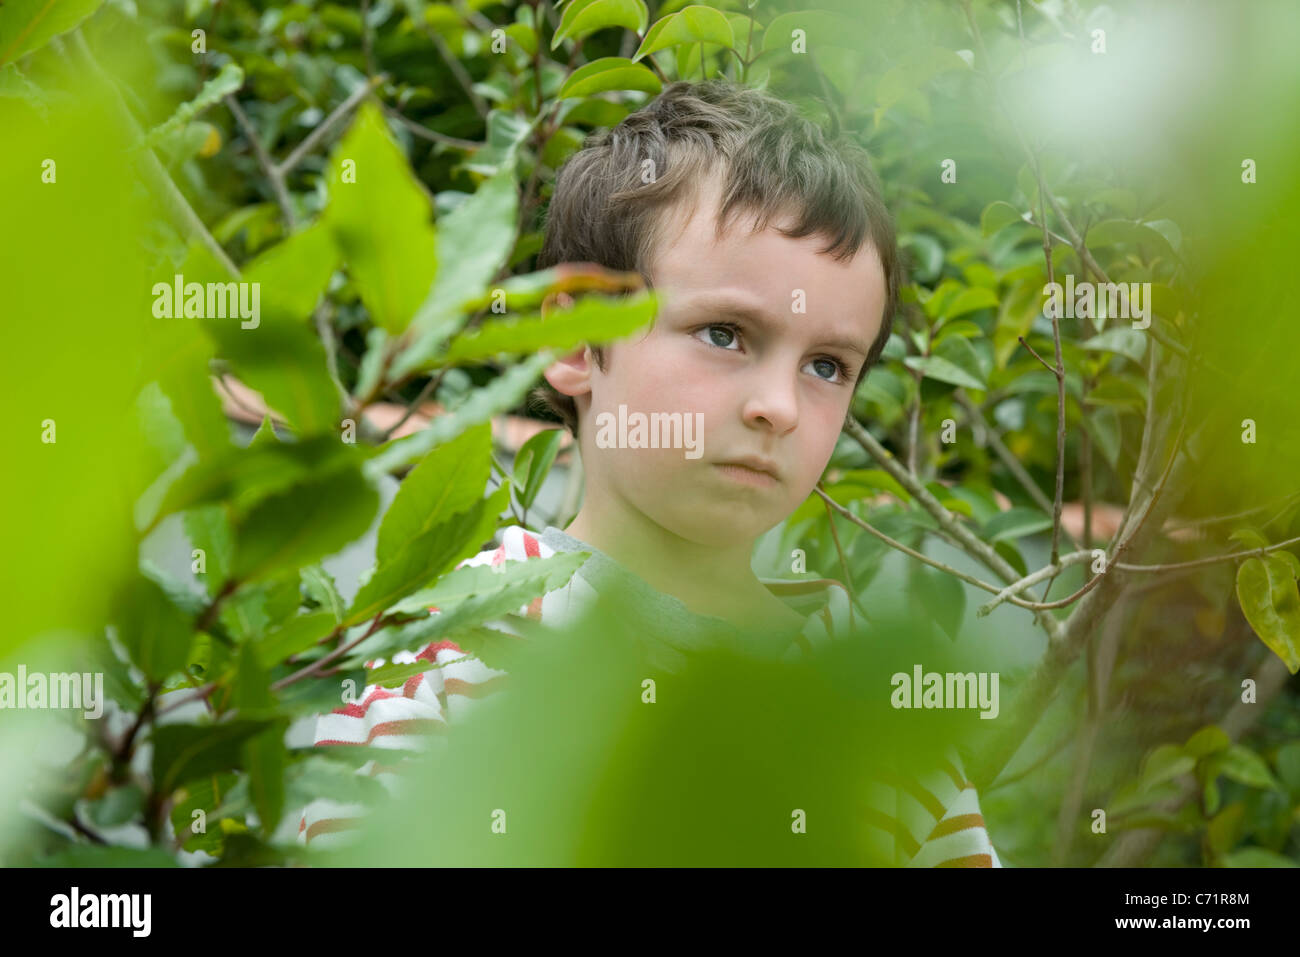 Boy in foliage, looking up in thought - Stock Image